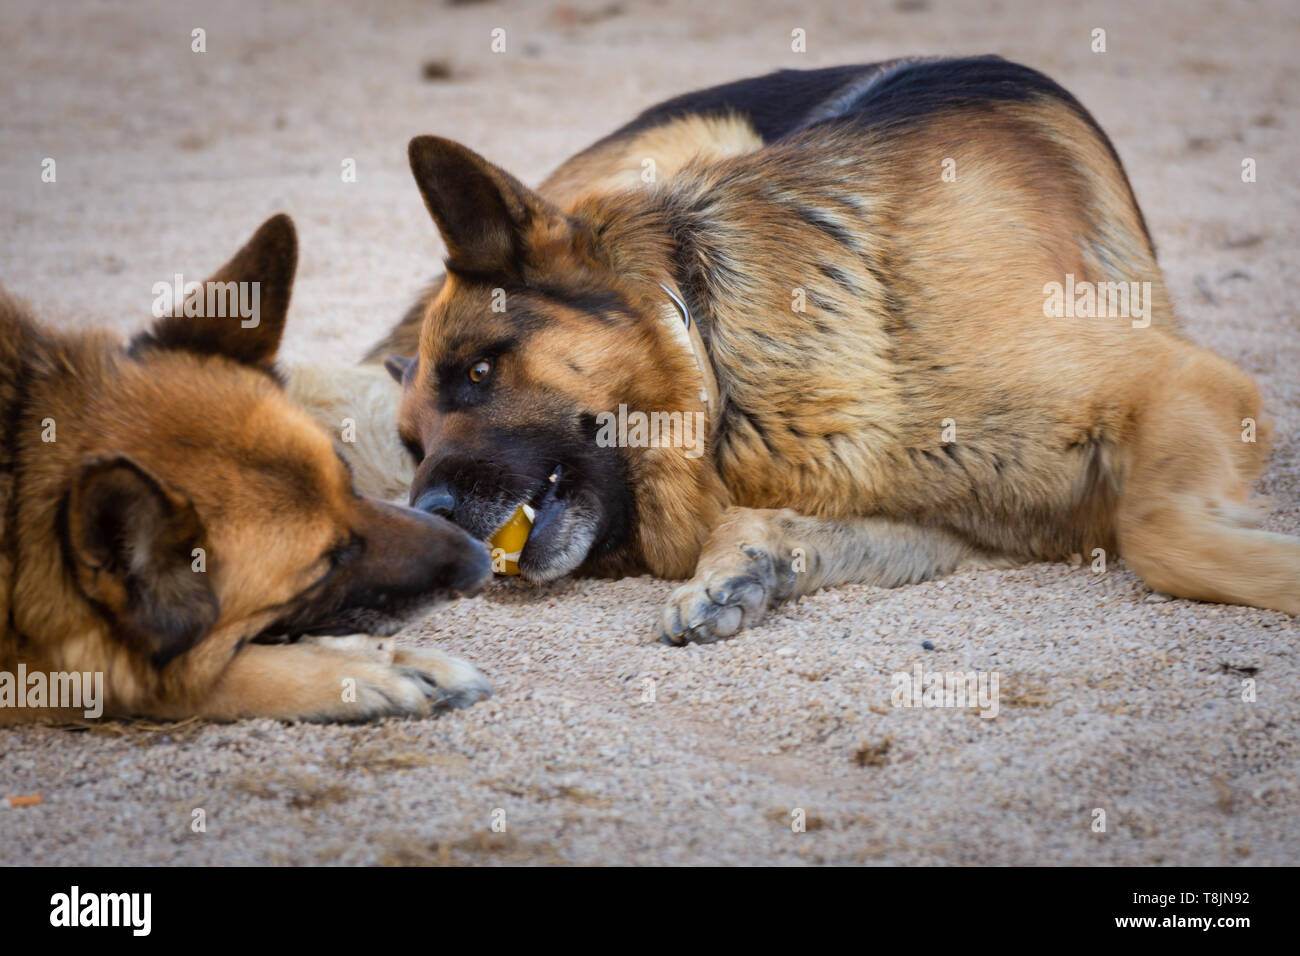 Two dogs playing with a ball. Two German shepherds playing with a yellow ball. Pets portrait. Outdoor natural portrait - Stock Image